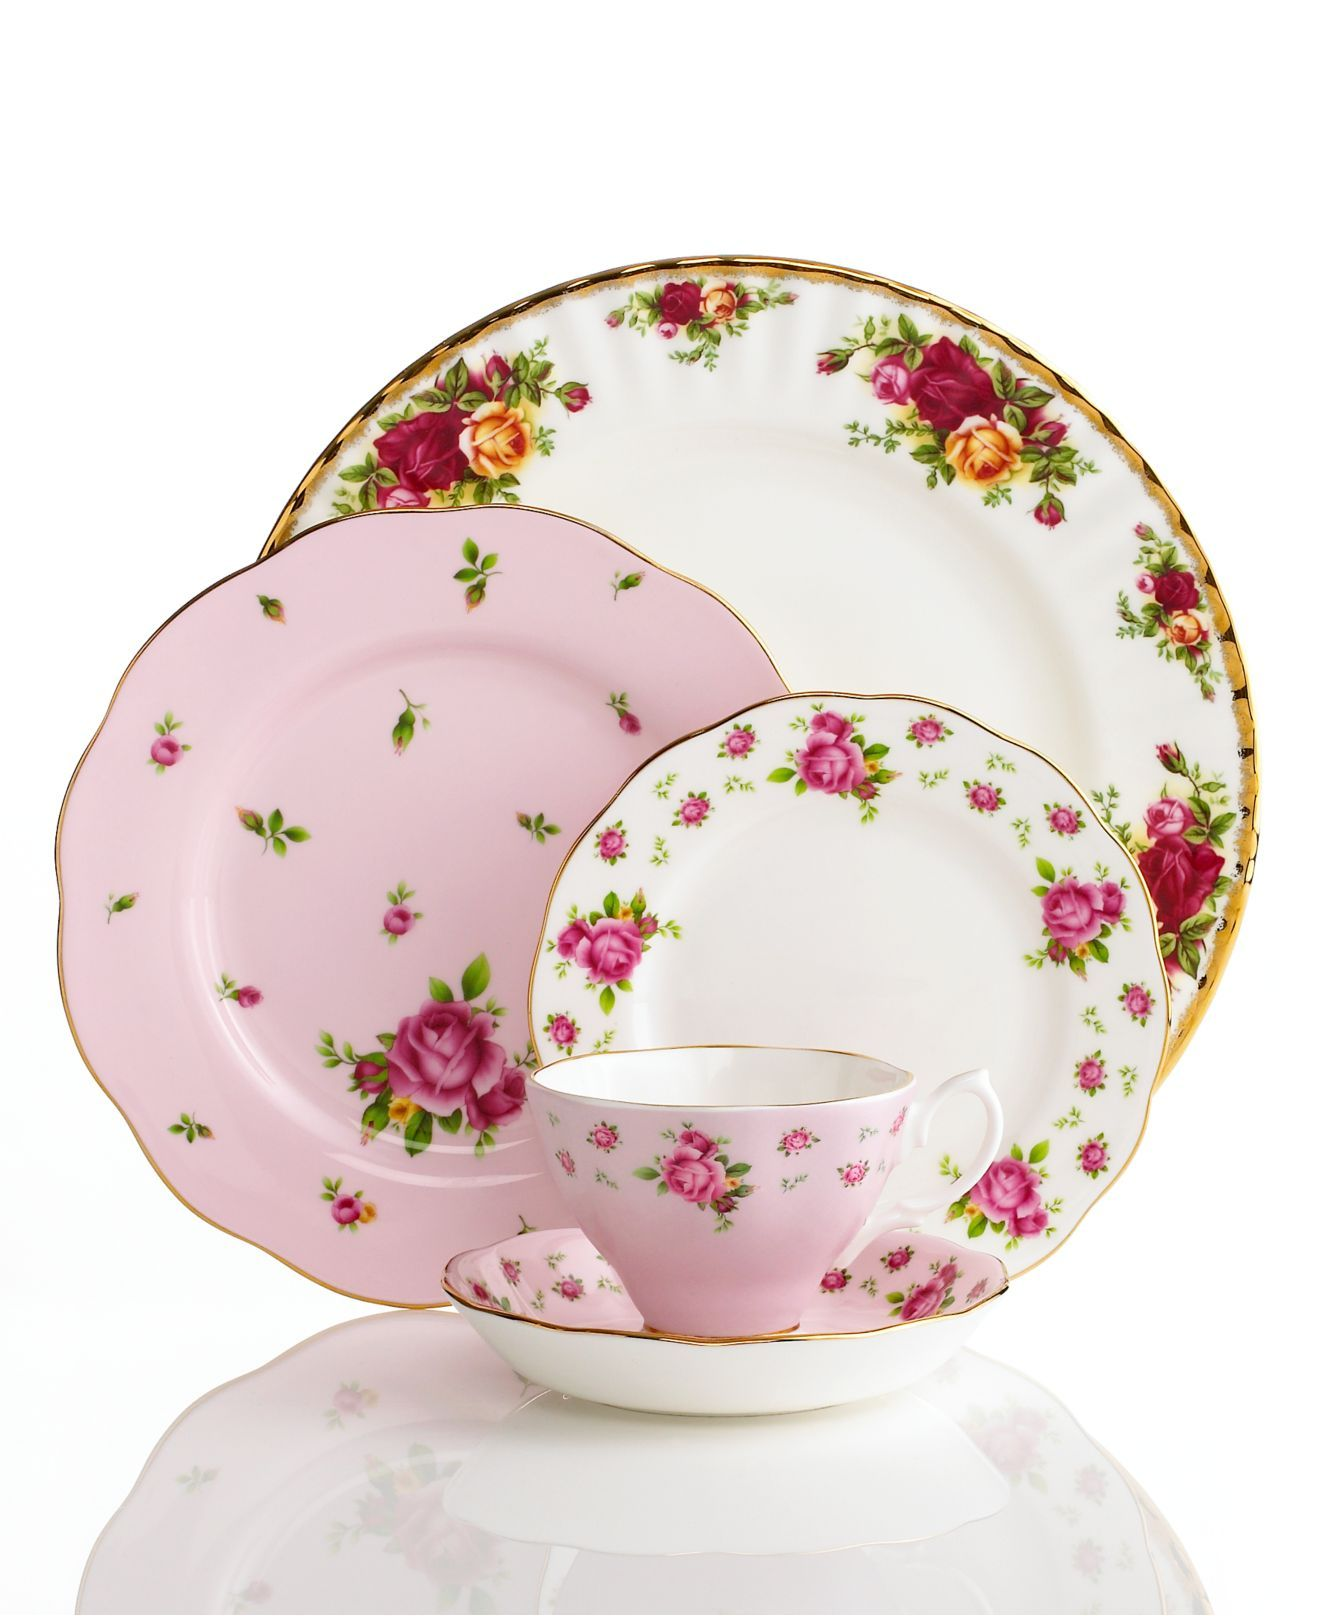 royal albert dinnerware old country roses mix and match  fine  - royal albert dinnerware old country roses mix and match  fine china dining